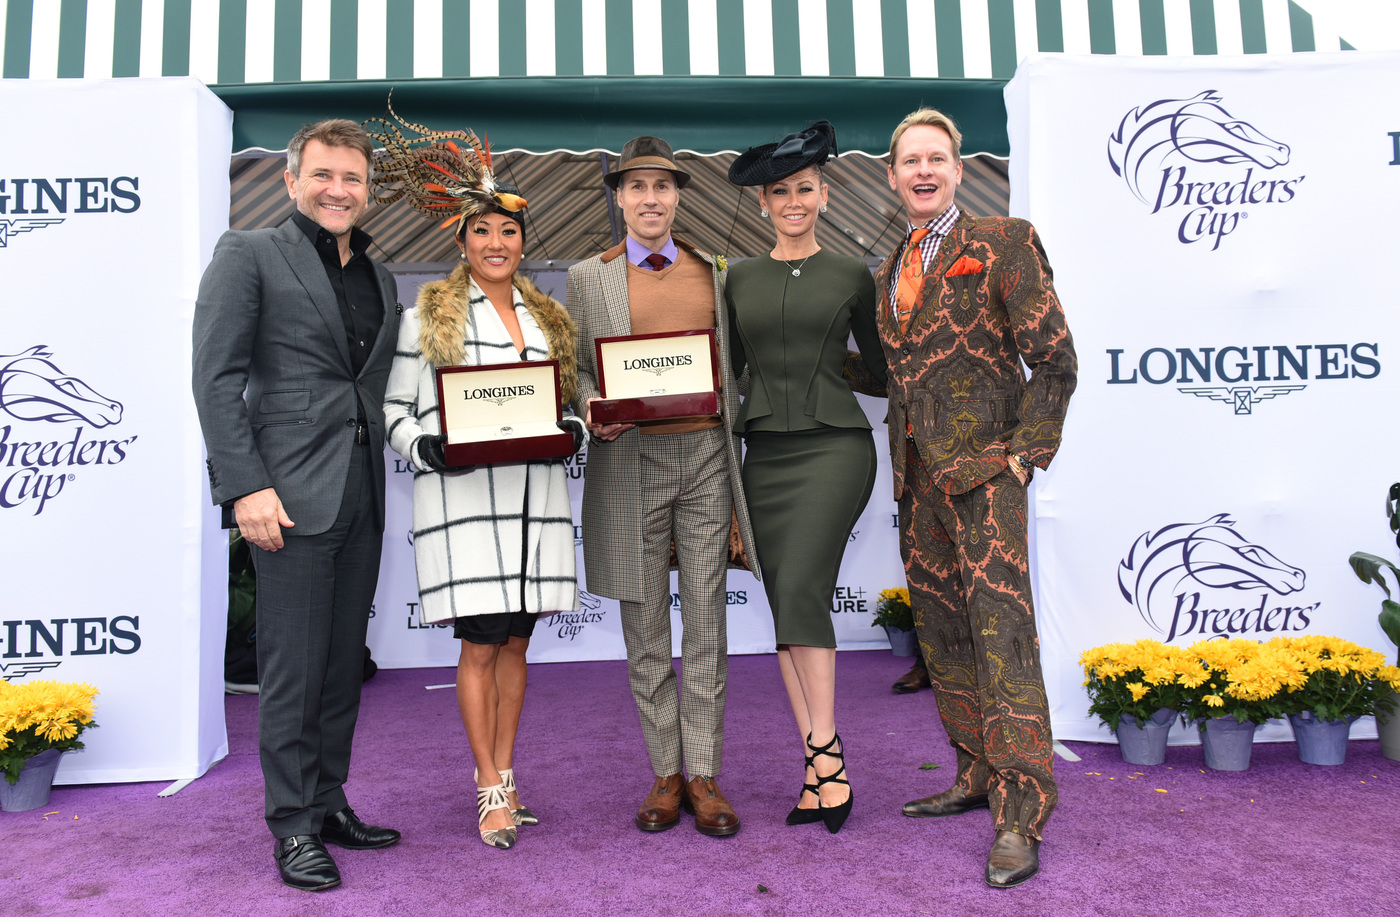 Longines Flat Racing Event: Longines times American Pharoah's historic victory in Breeders' Cup Classic 5